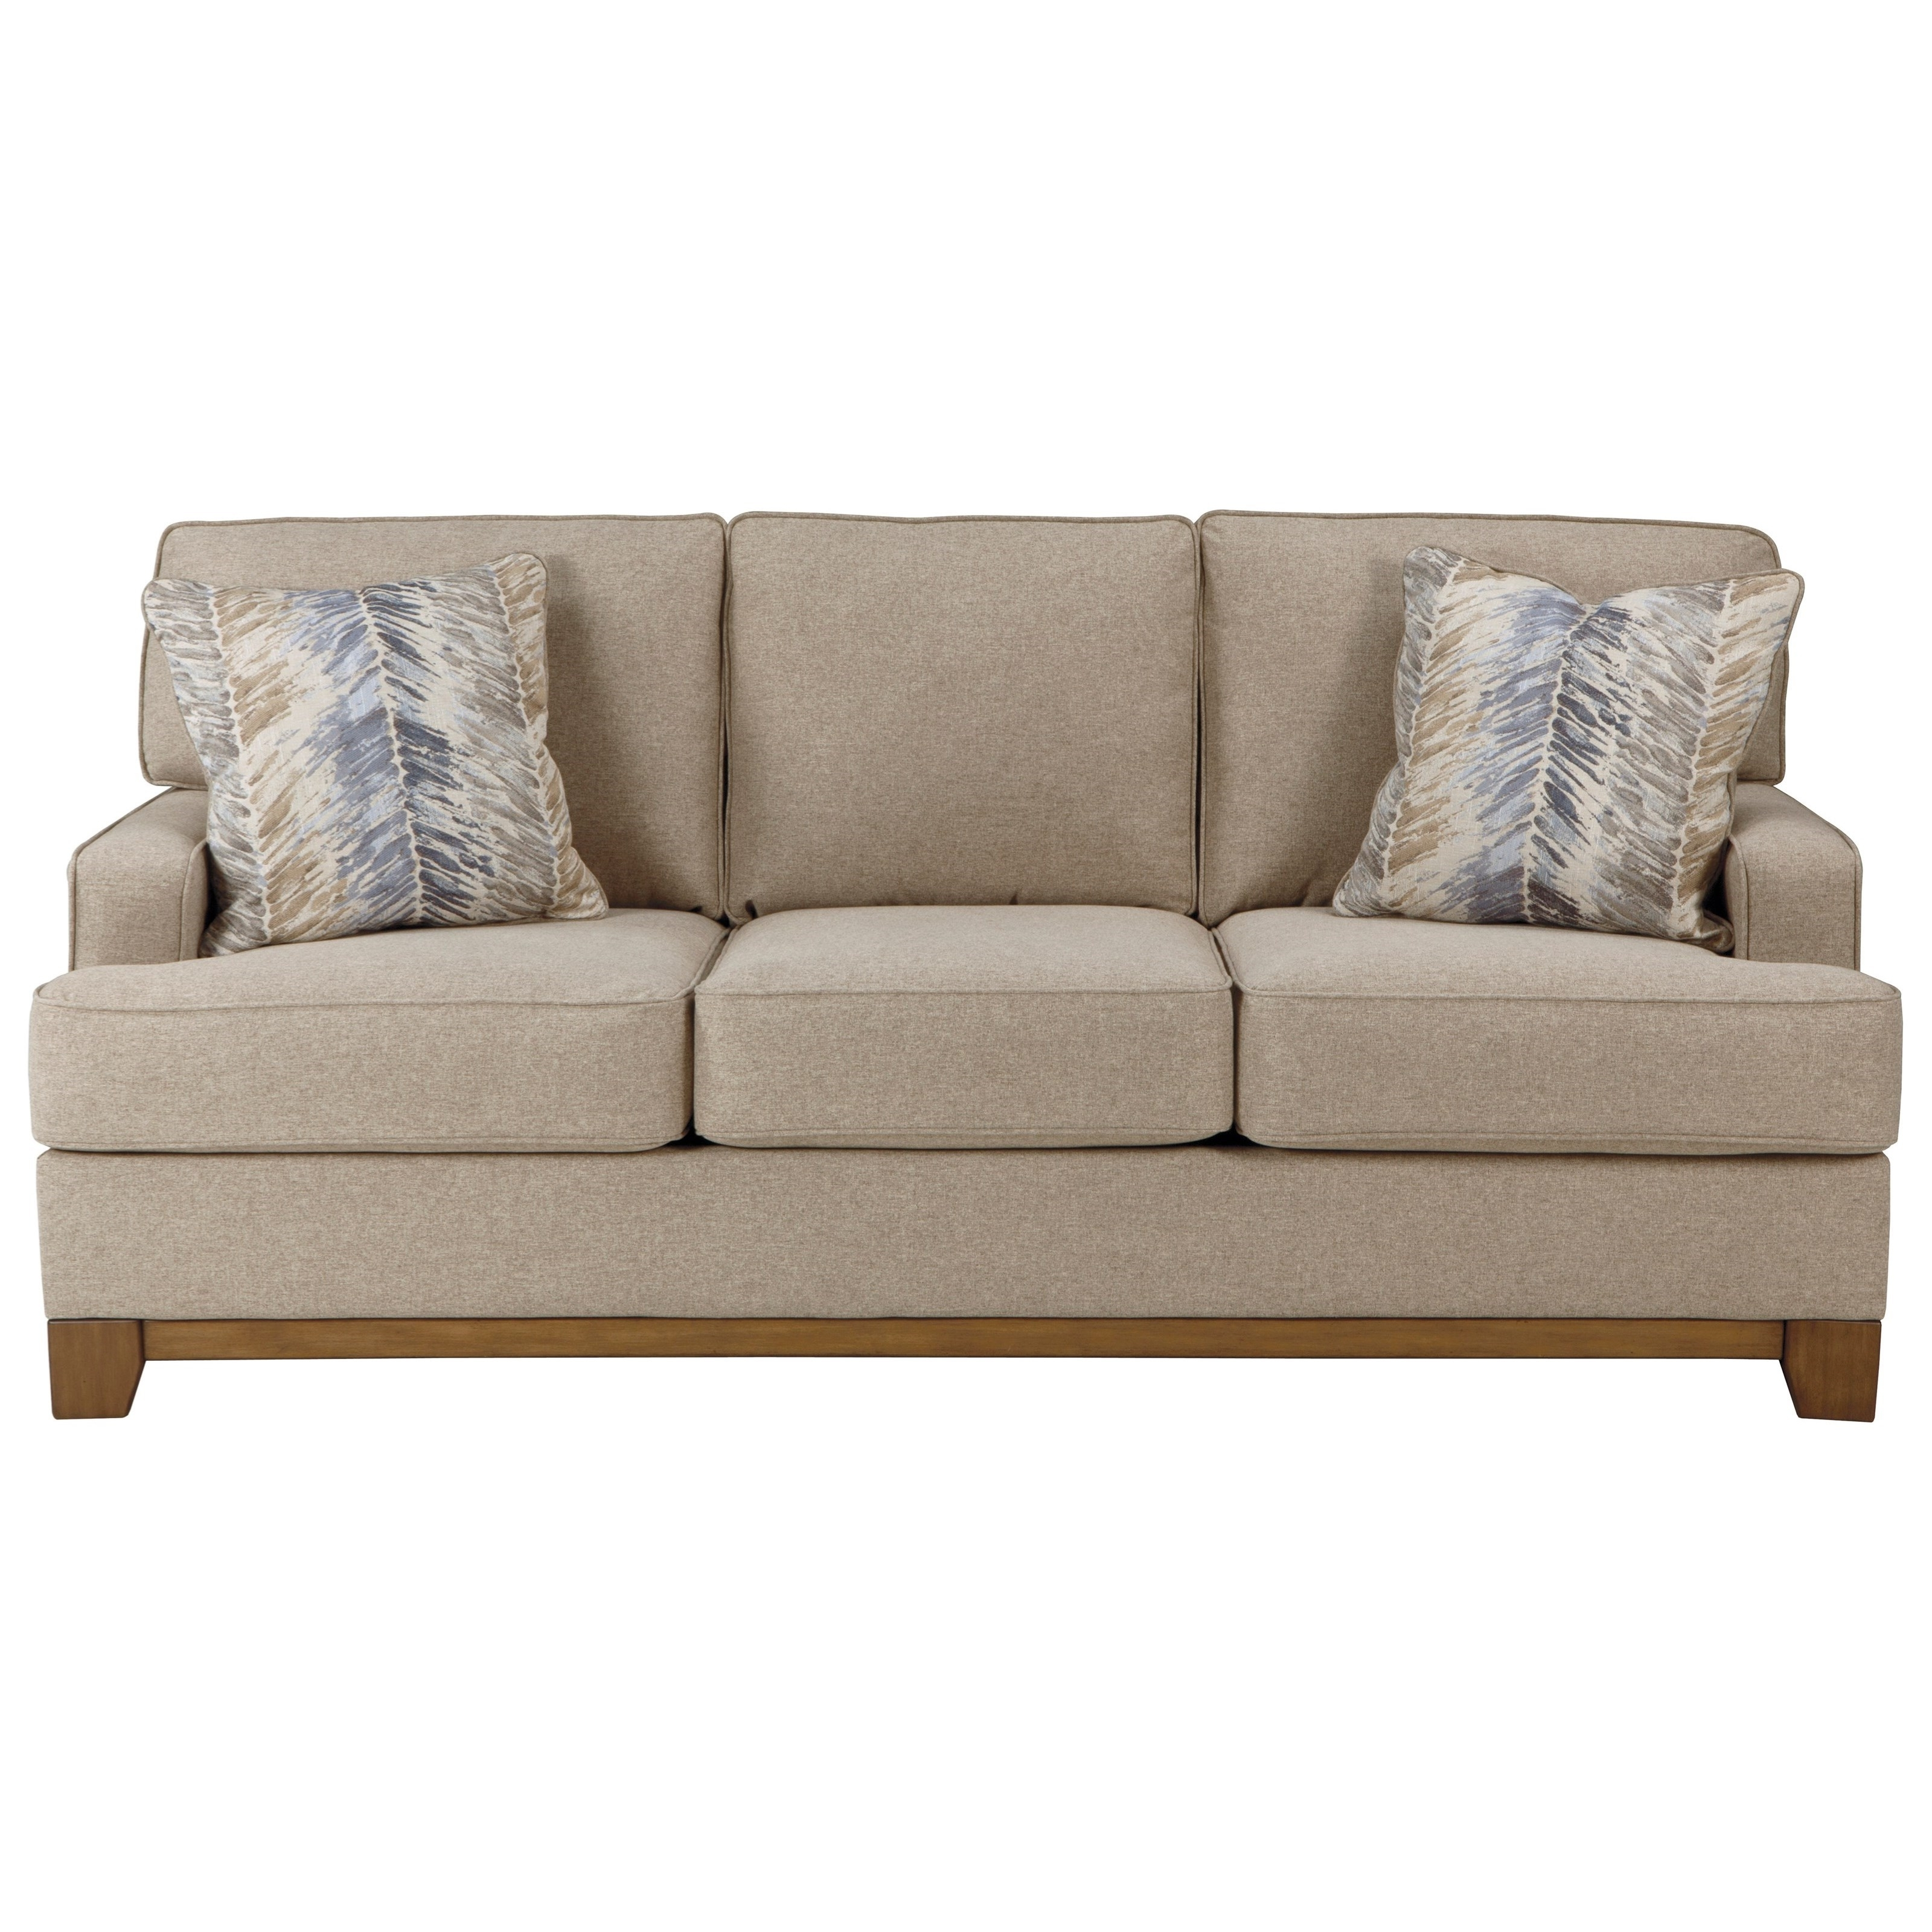 Best And Newest Shop Sofas (View 1 of 20)